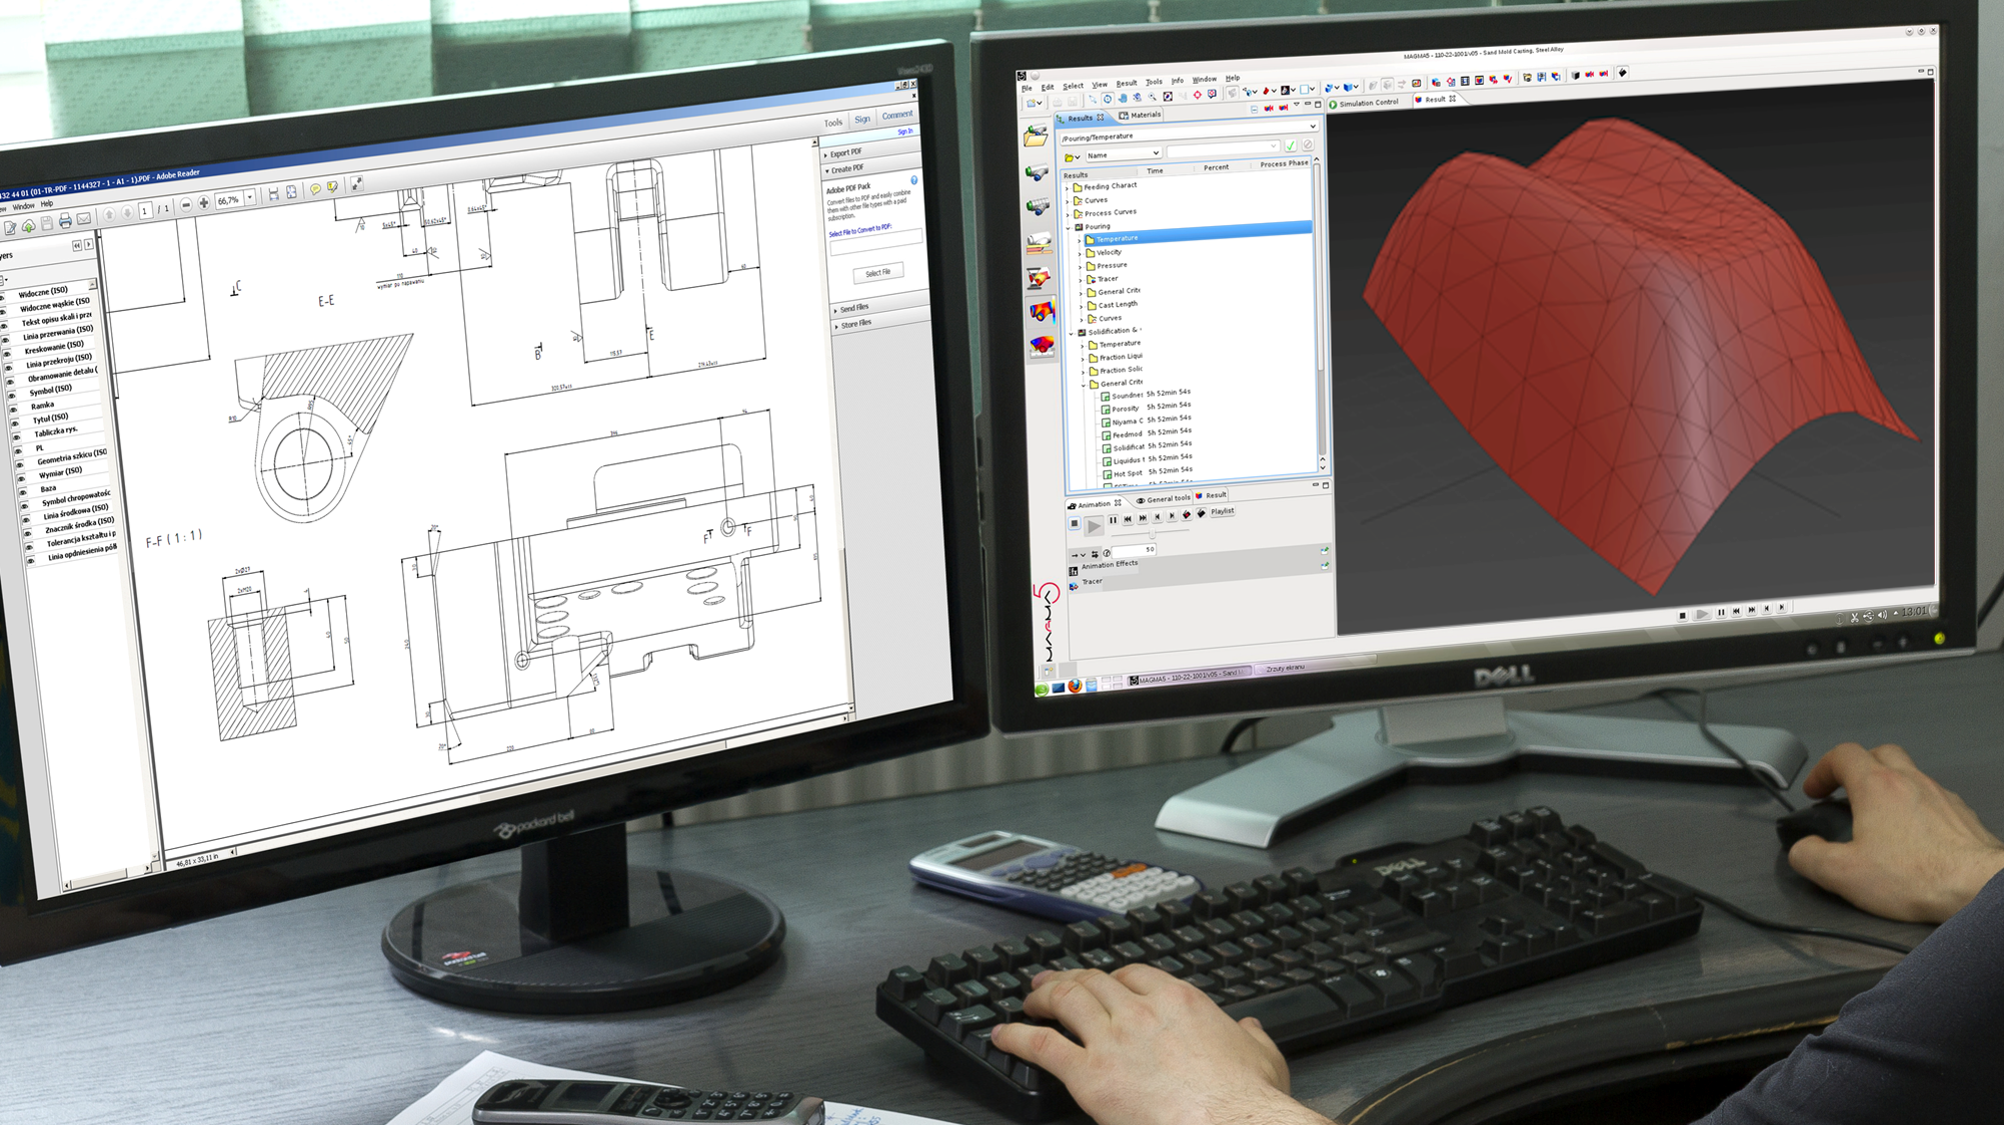 Screens with CAD drawings.